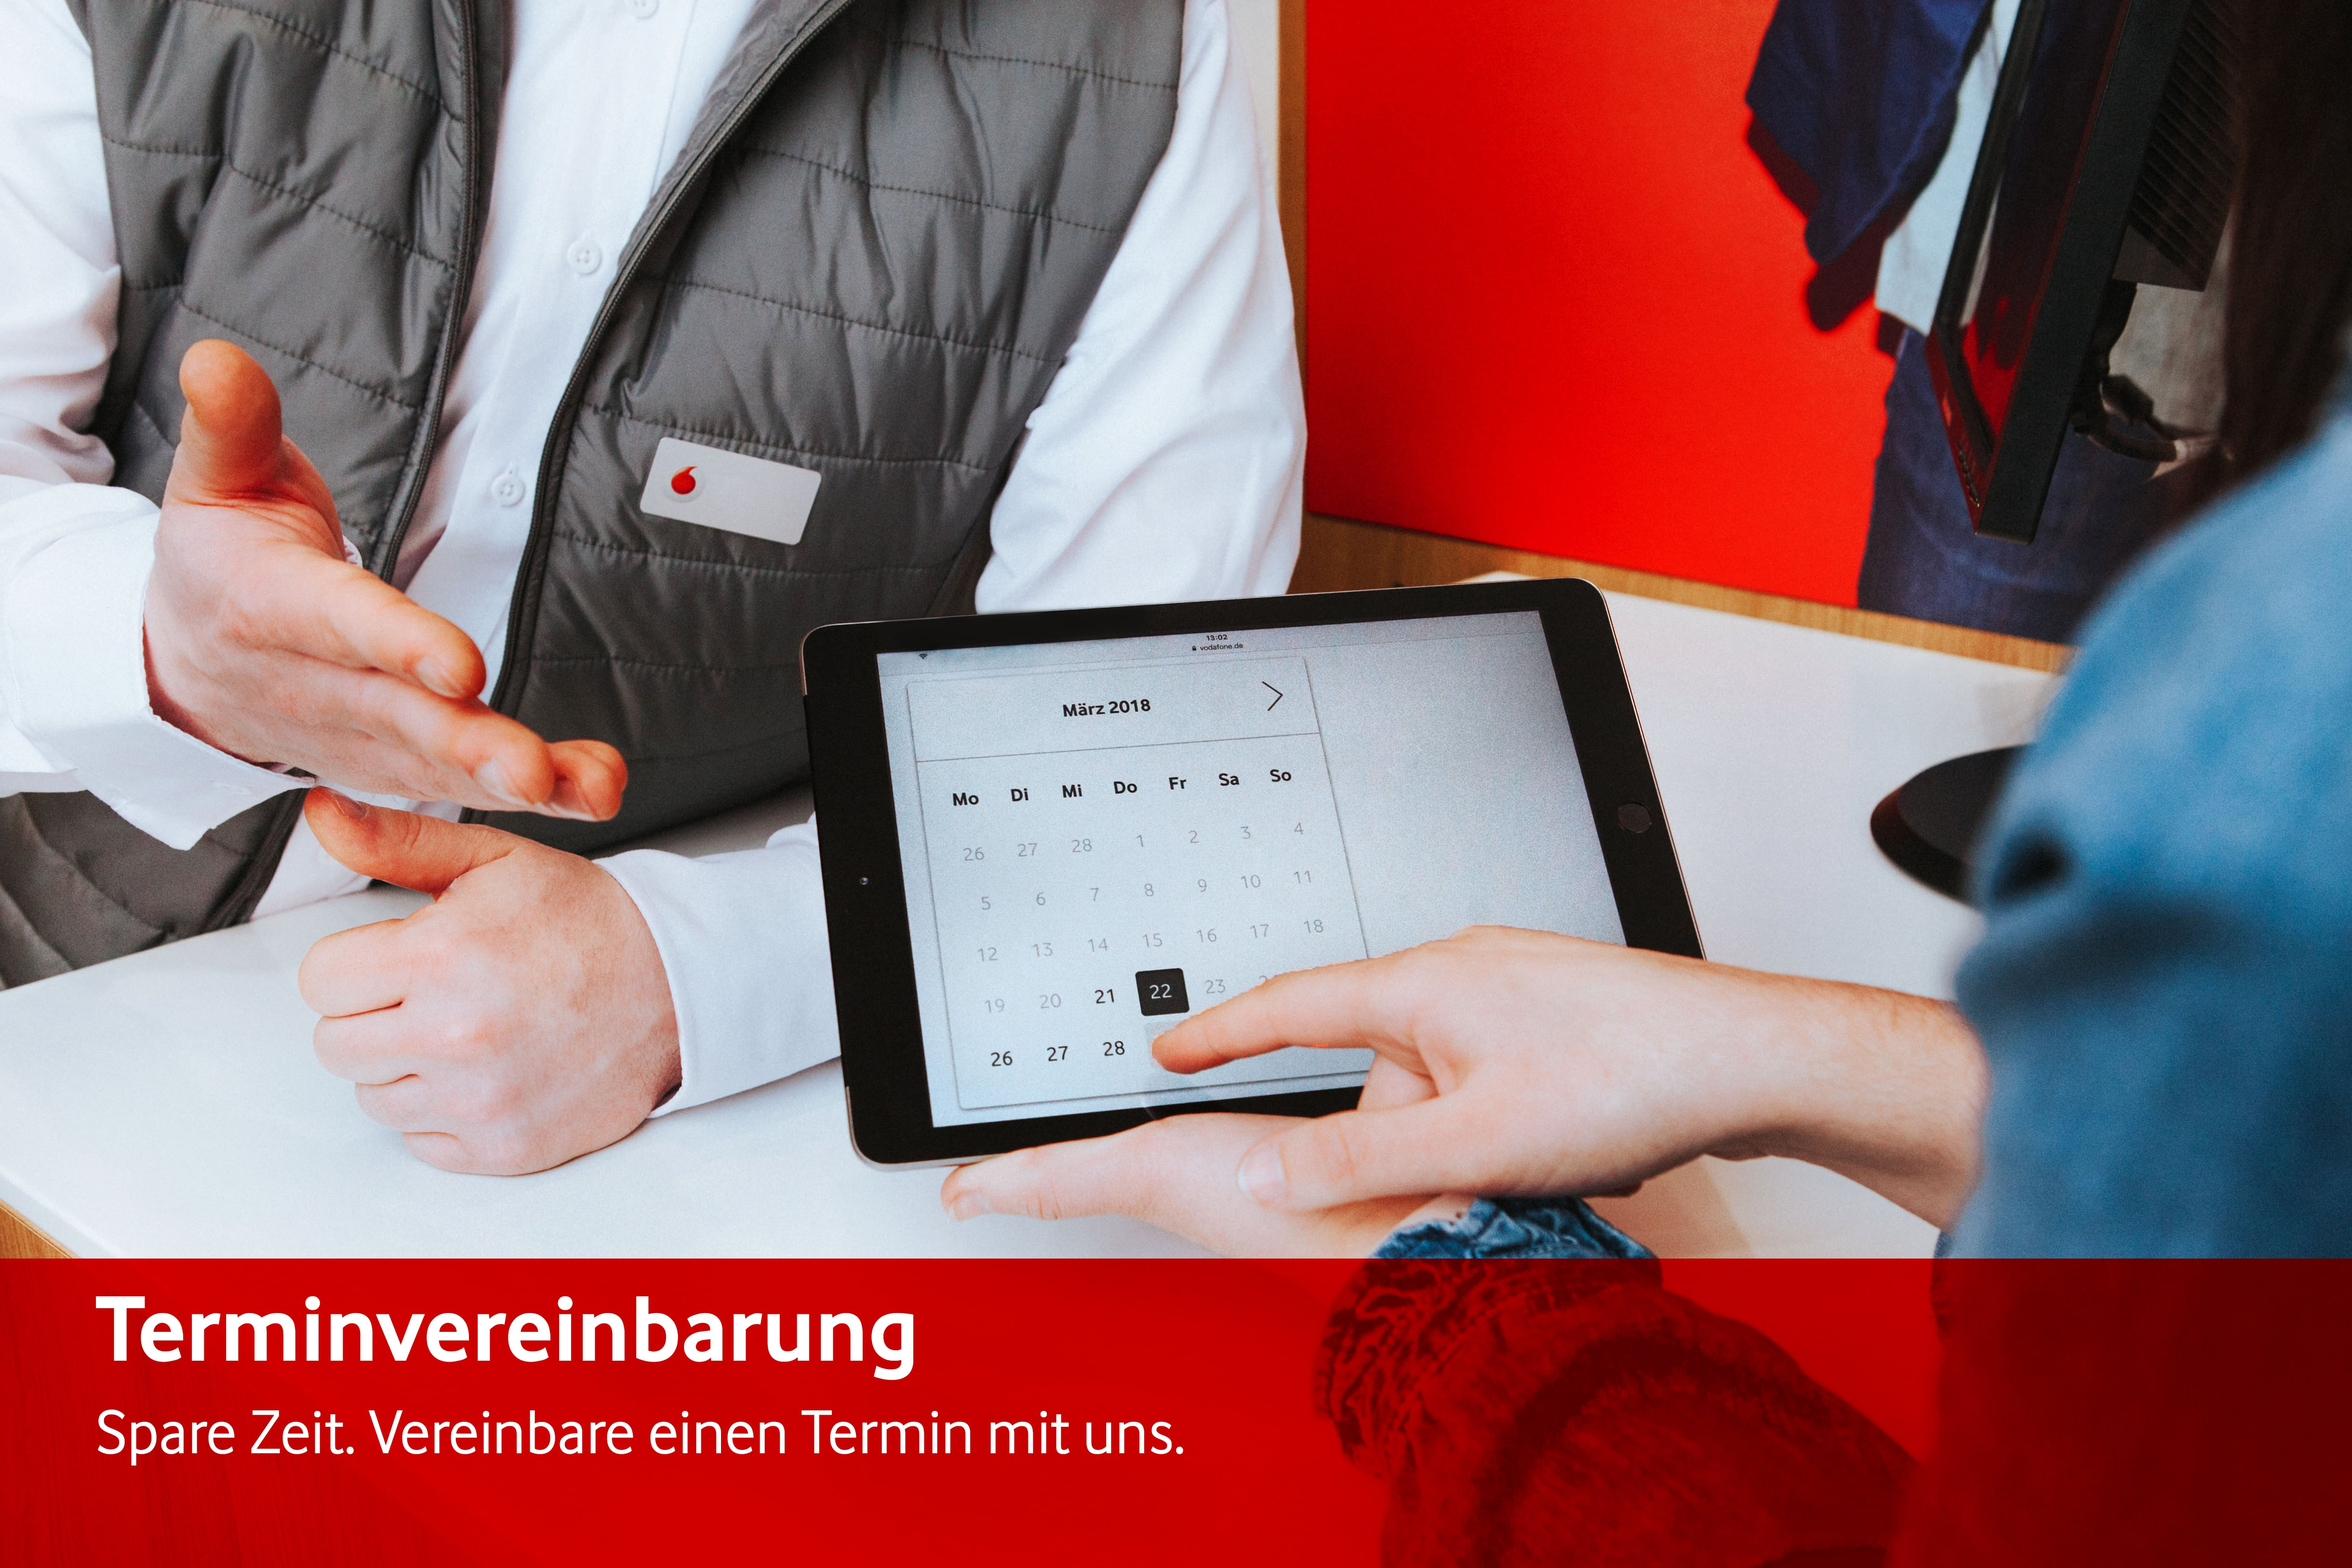 Vodafone Shop, Werth 5 in Wuppertal